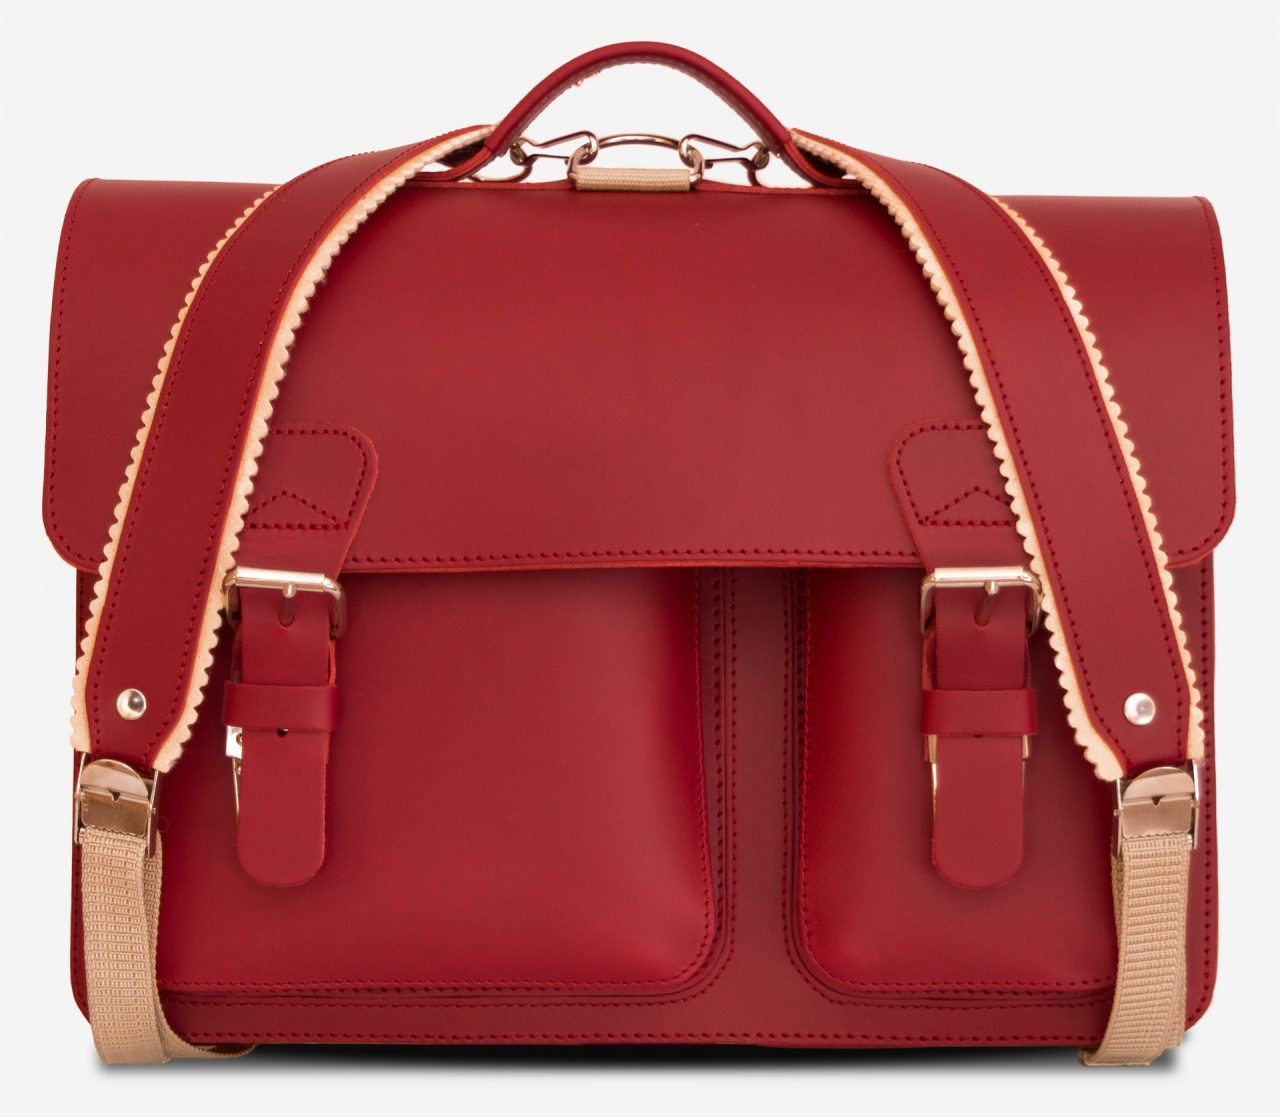 Front view of red leather satchel backpack with 2 gussets and asymmetric front pockets for women - 152237.